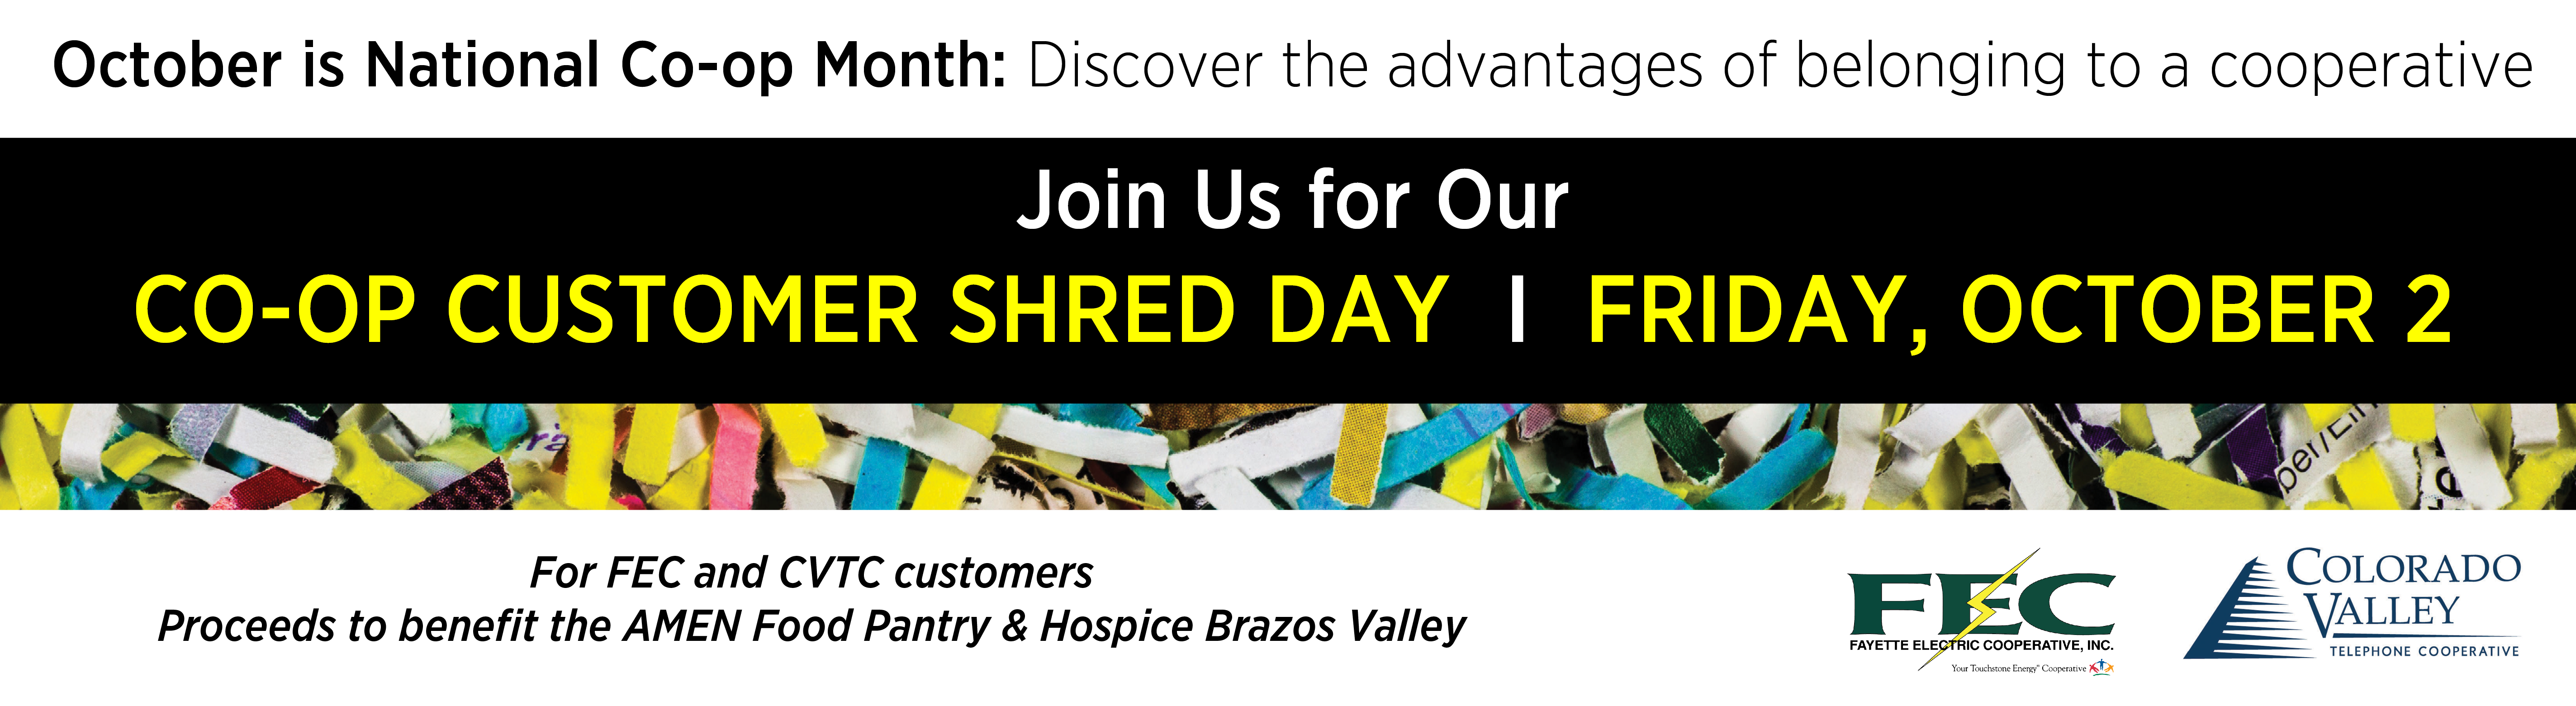 Join us for Co-op Customer Shred Day - October 2